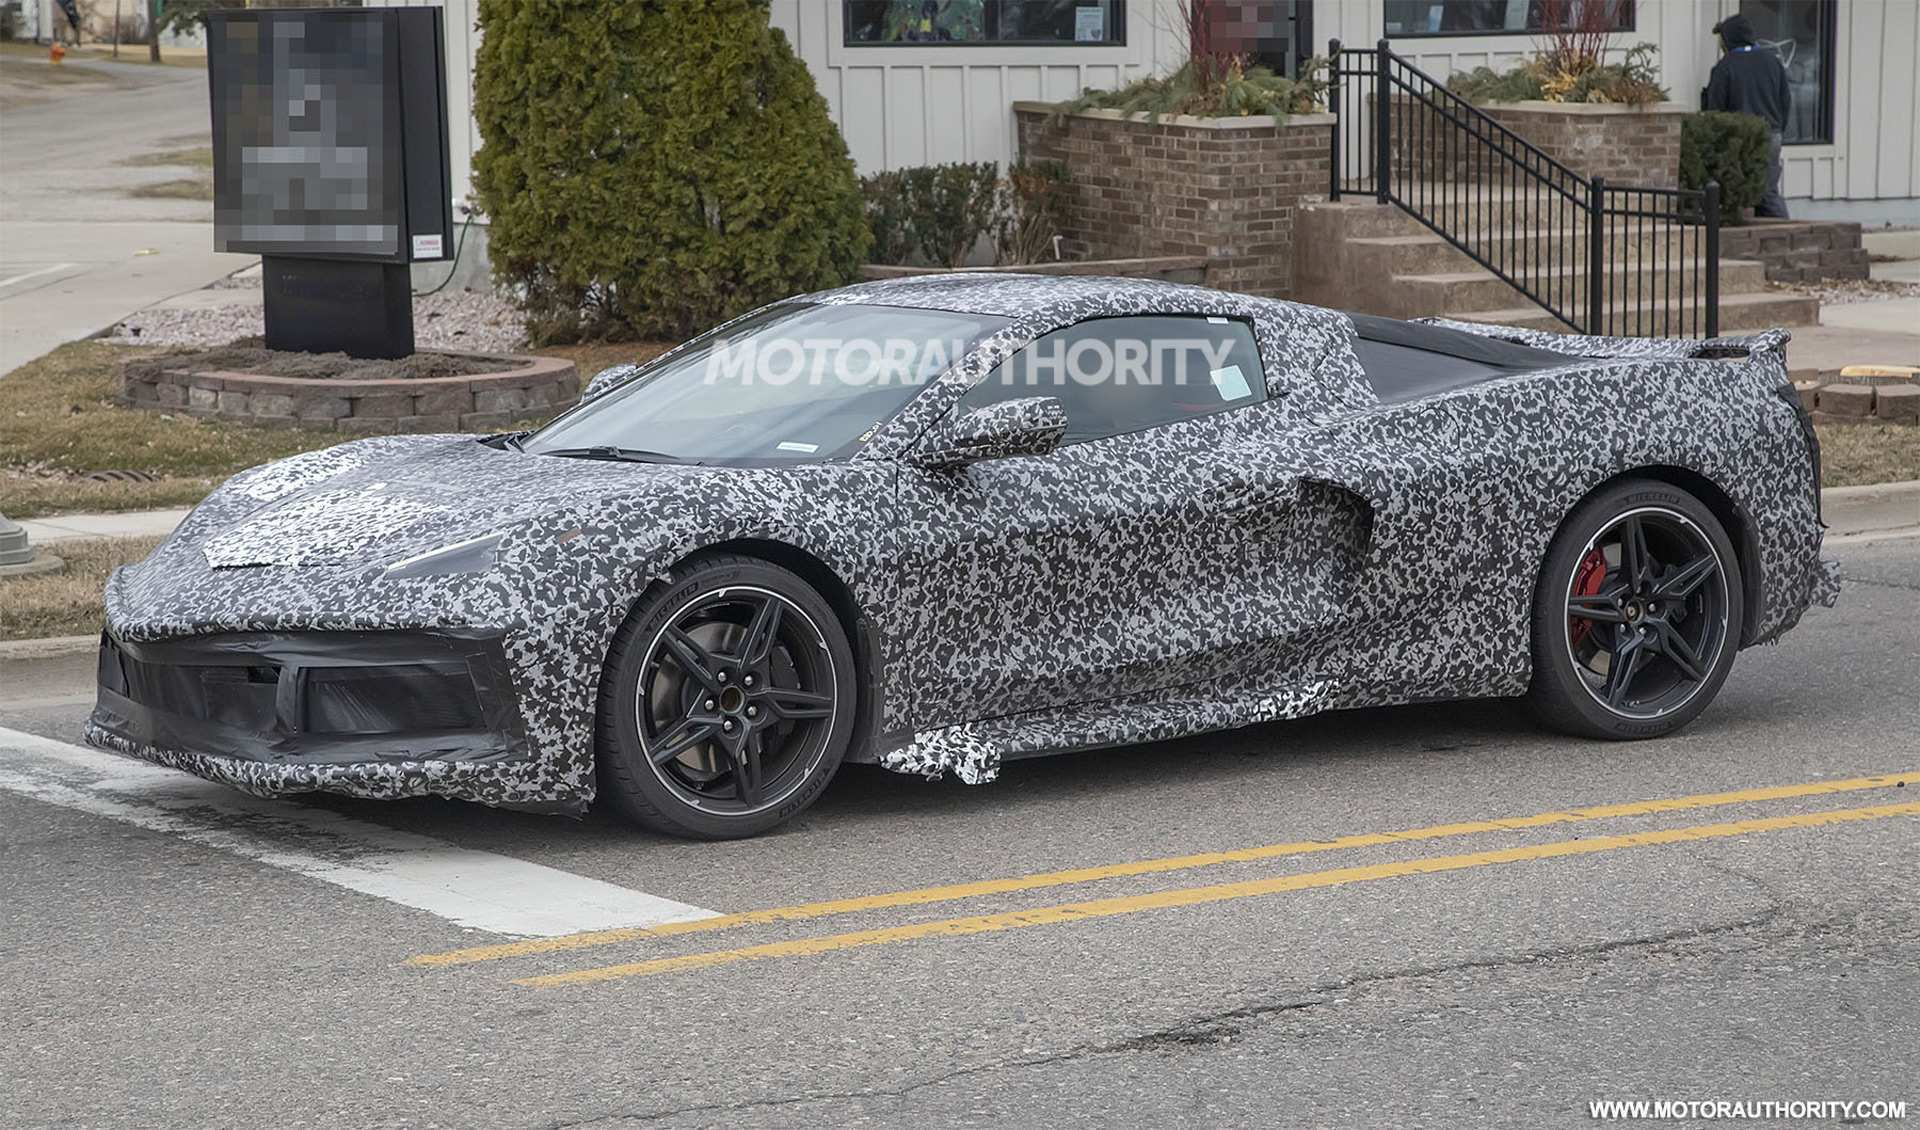 36 A Pictures Of The 2020 Chevrolet Corvette Interior